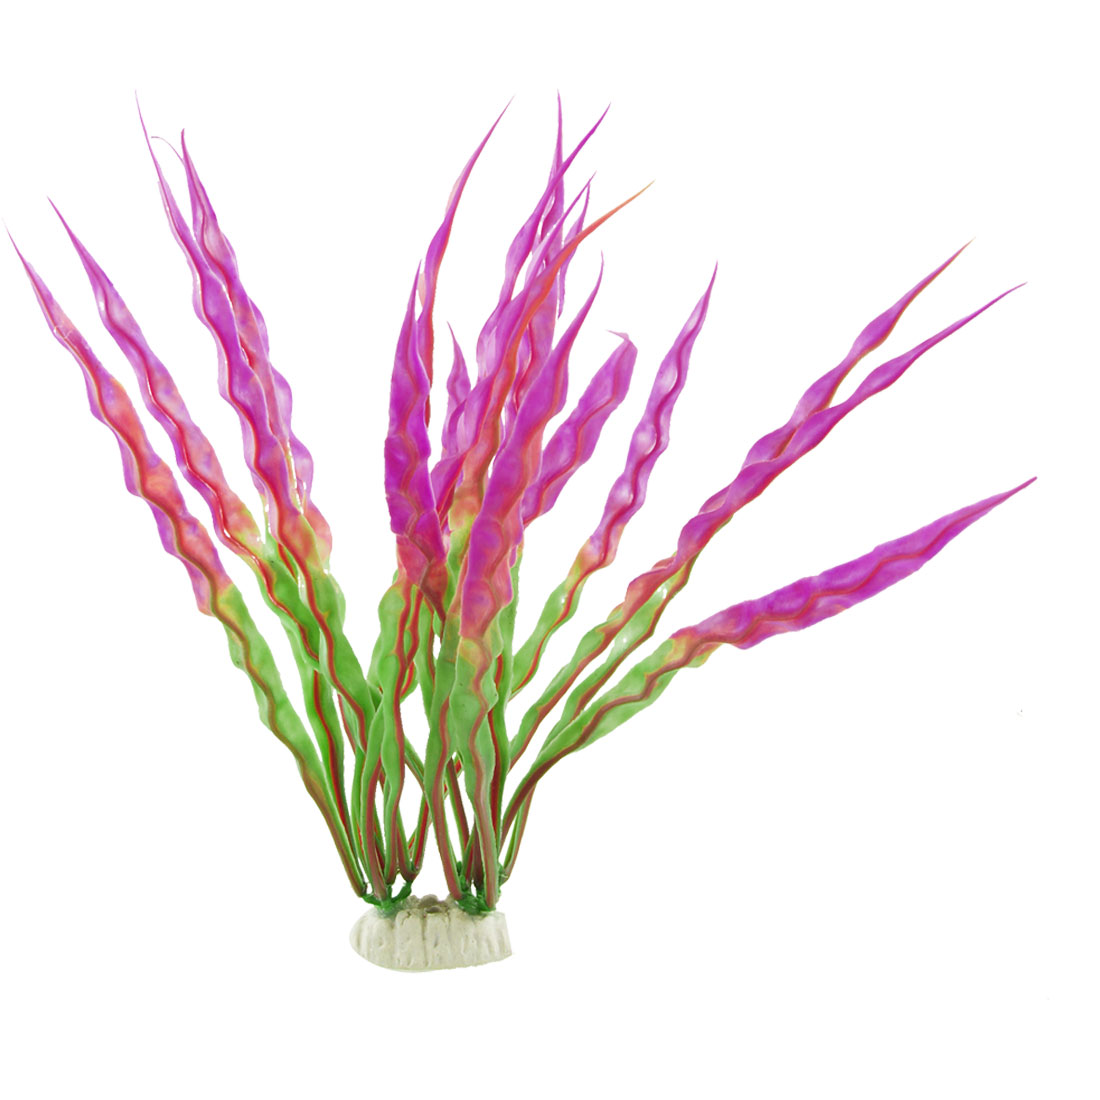 "Aquarium Purple Green 11.4"" Height Plastic Grass Plant Decor"